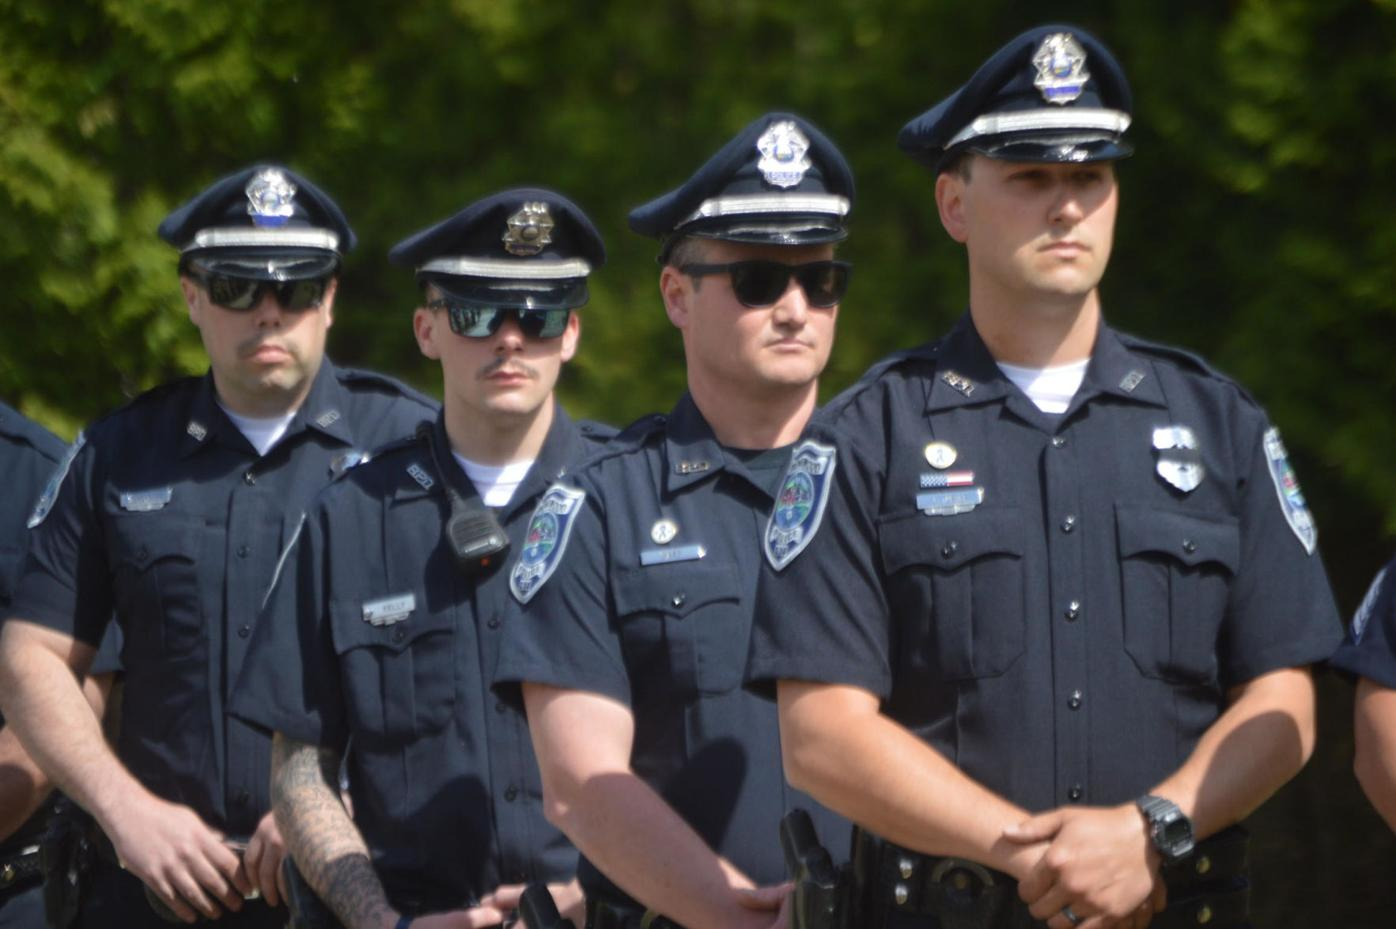 Police officers from Brentwood and other surrounding towns